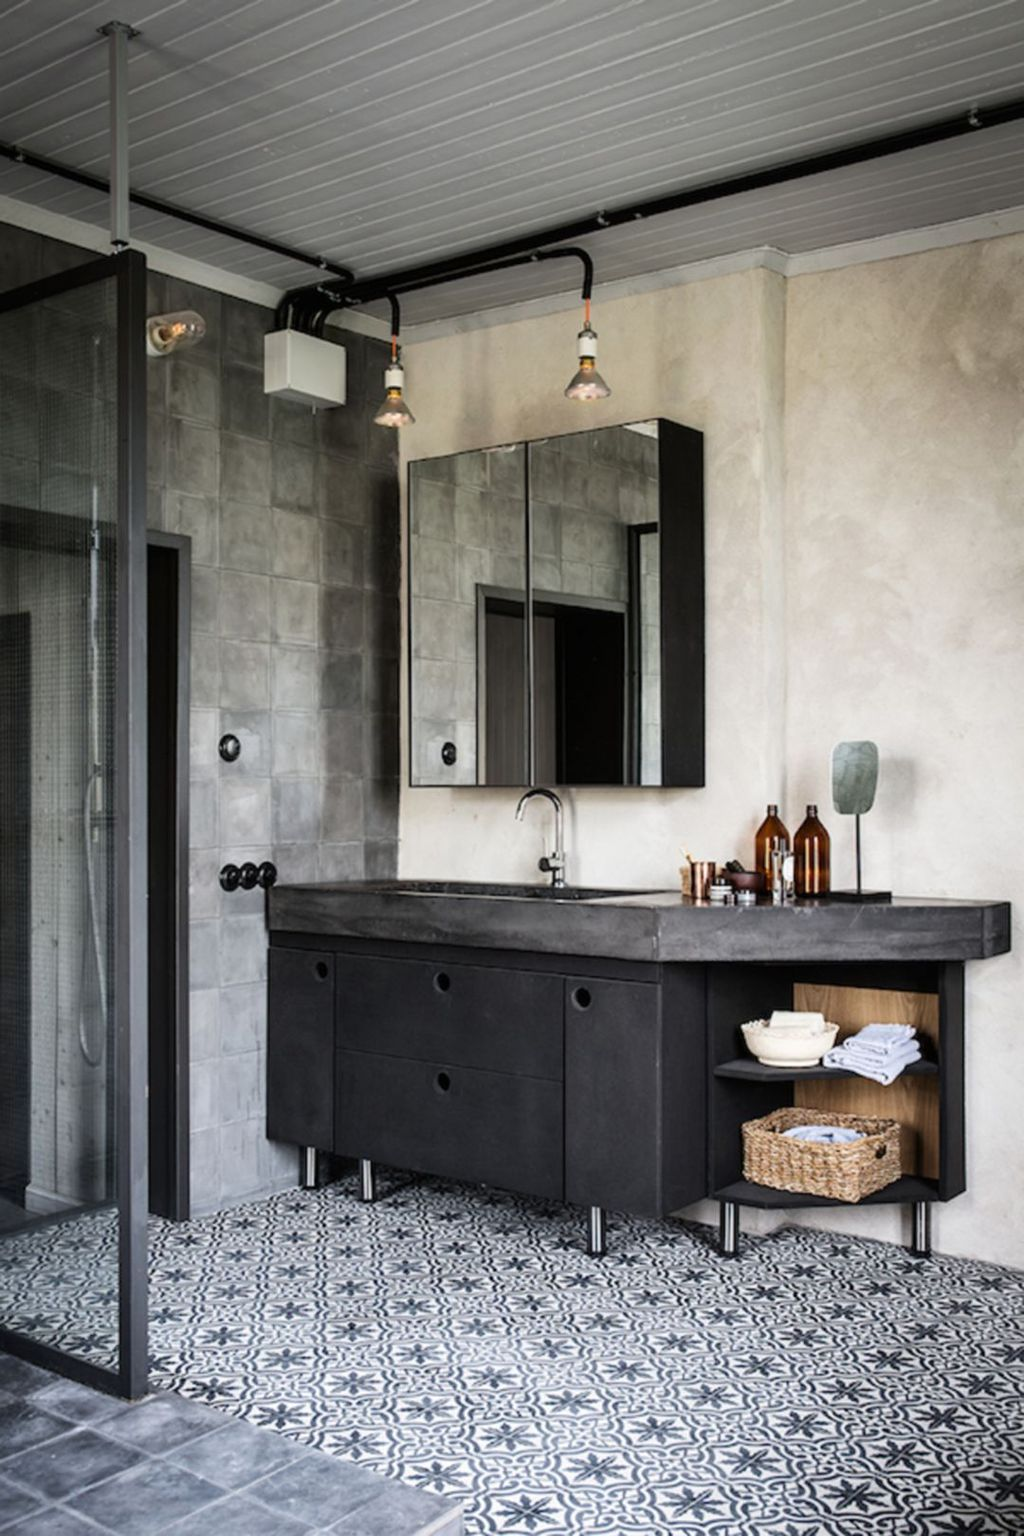 Stunning Industrial Bathroom Design Ideas 09